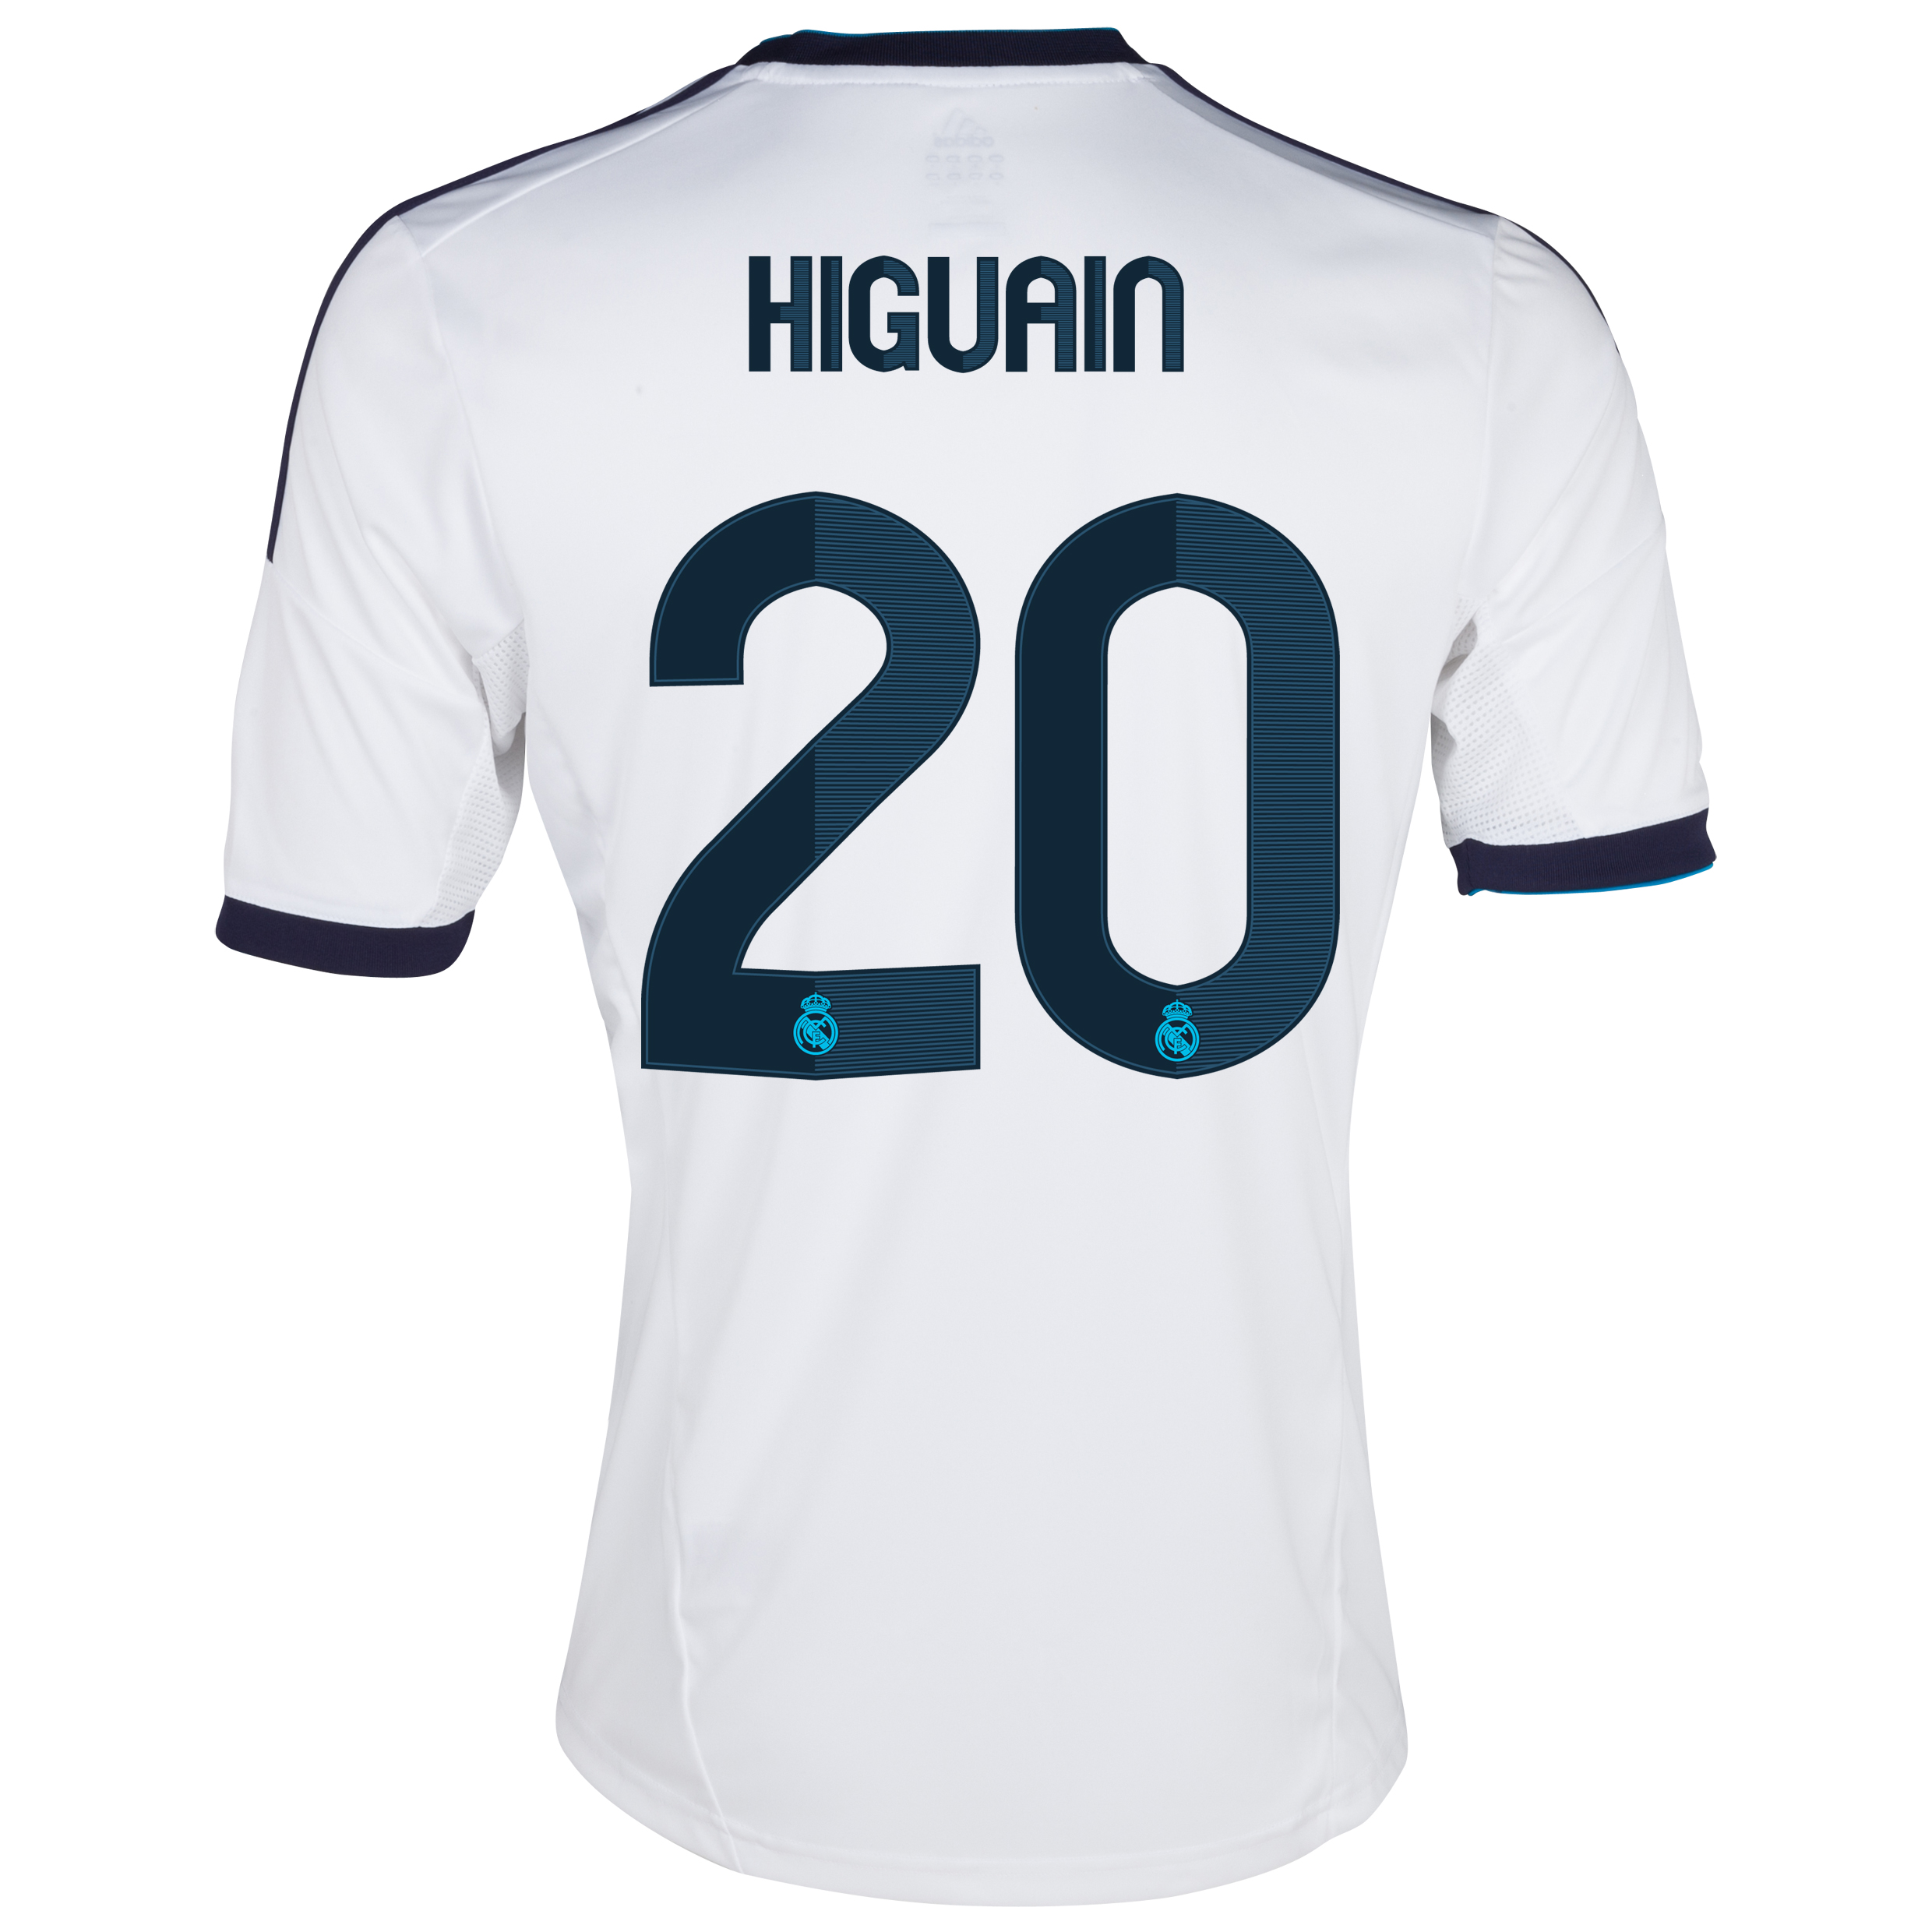 Camiseta 1 equipacin del Real Madrid 2012/13 con Higuan 20